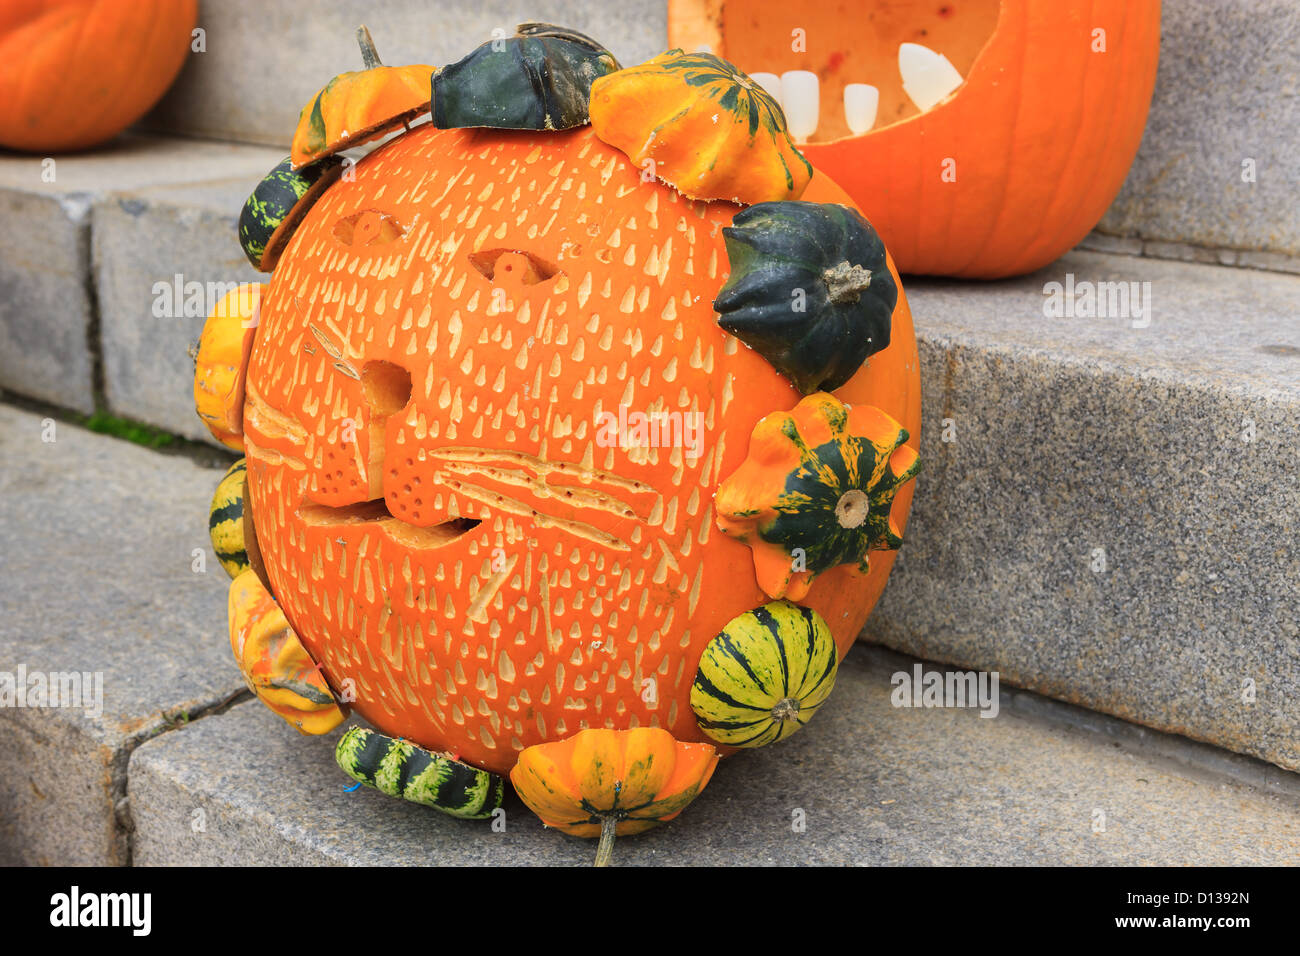 Halloween is near and you ve probably seen some awesome pumpkin